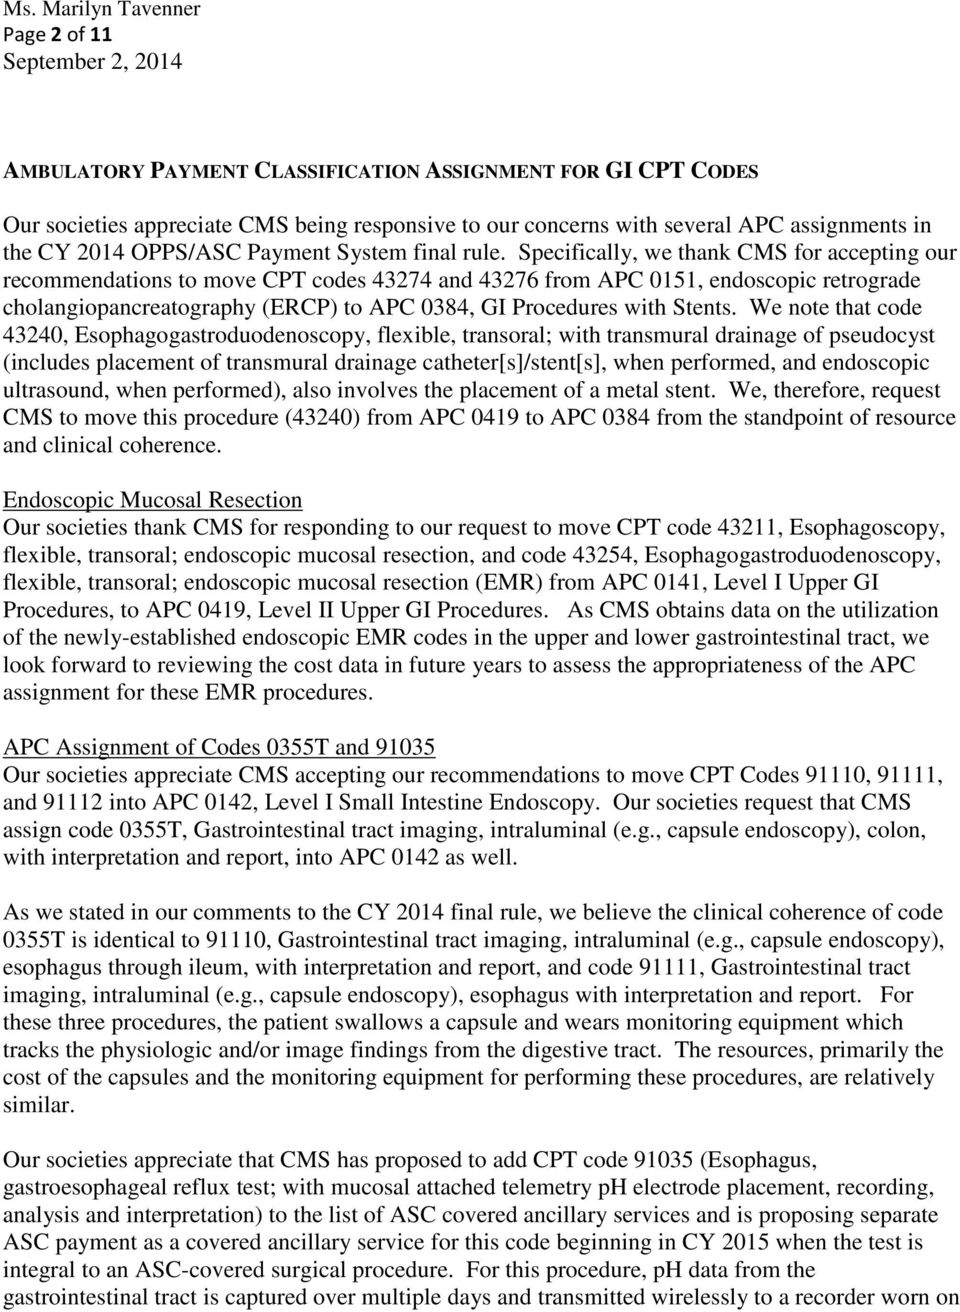 Specifically, we thank CMS for accepting our recommendations to move CPT codes 43274 and 43276 from APC 0151, endoscopic retrograde cholangiopancreatography (ERCP) to APC 0384, GI Procedures with